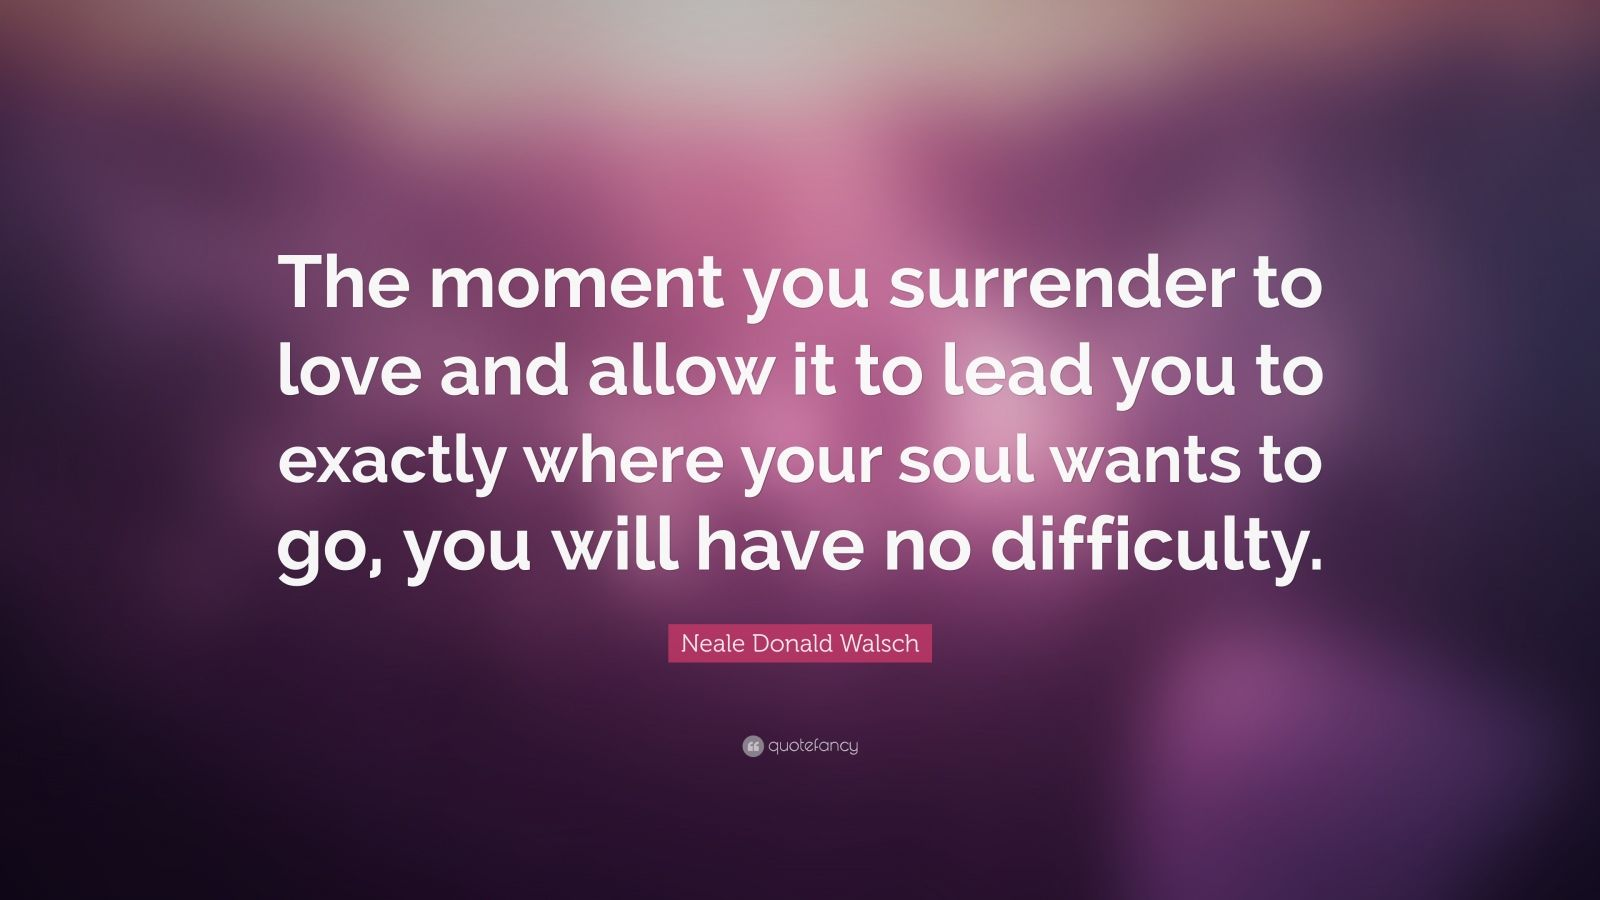 "Neale Donald Walsch Quote: ""The moment you surrender to love and allow it to lead you to exactly where your soul wants to go, you will have no difficulty."""